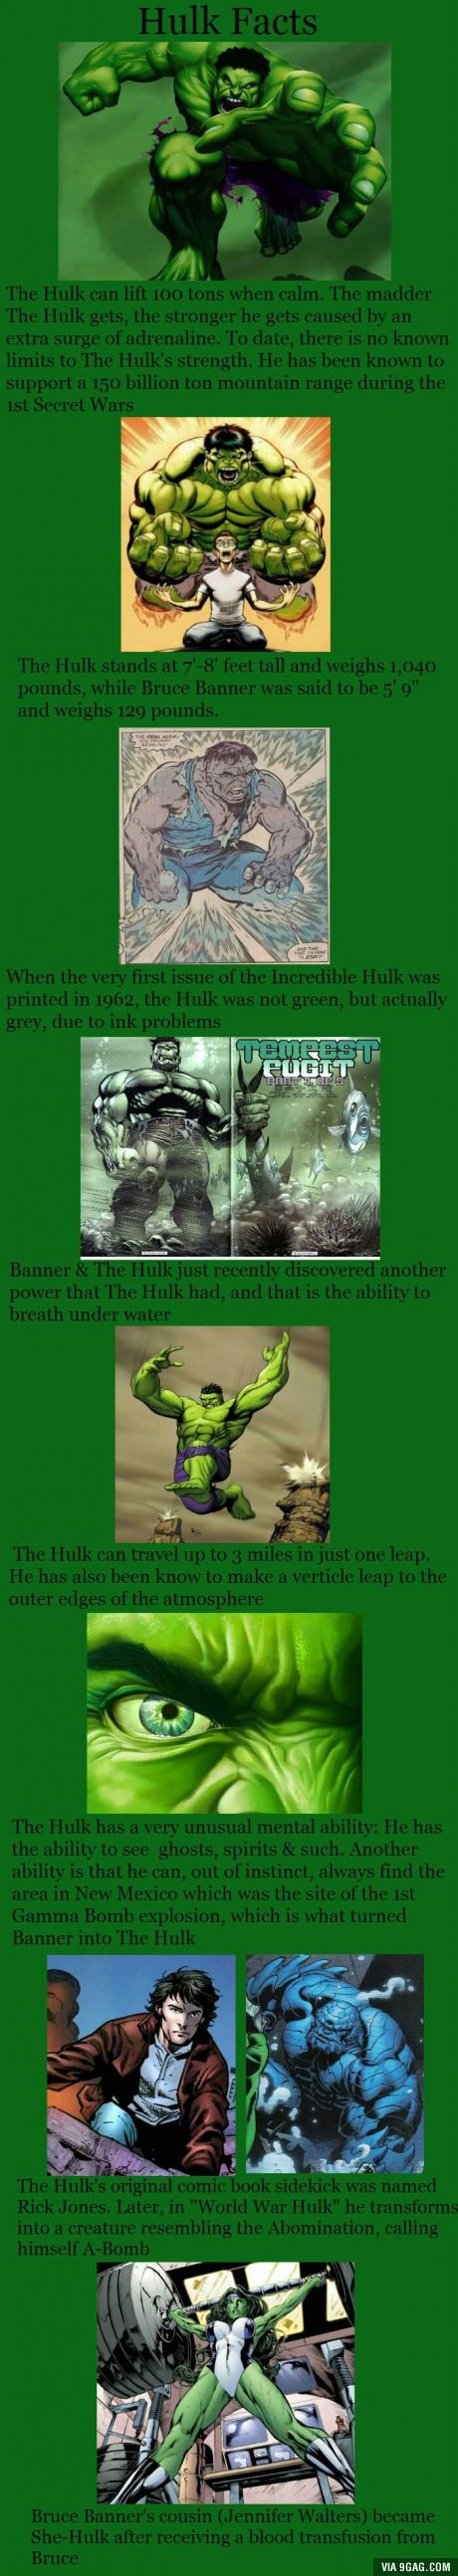 The Hulk facts